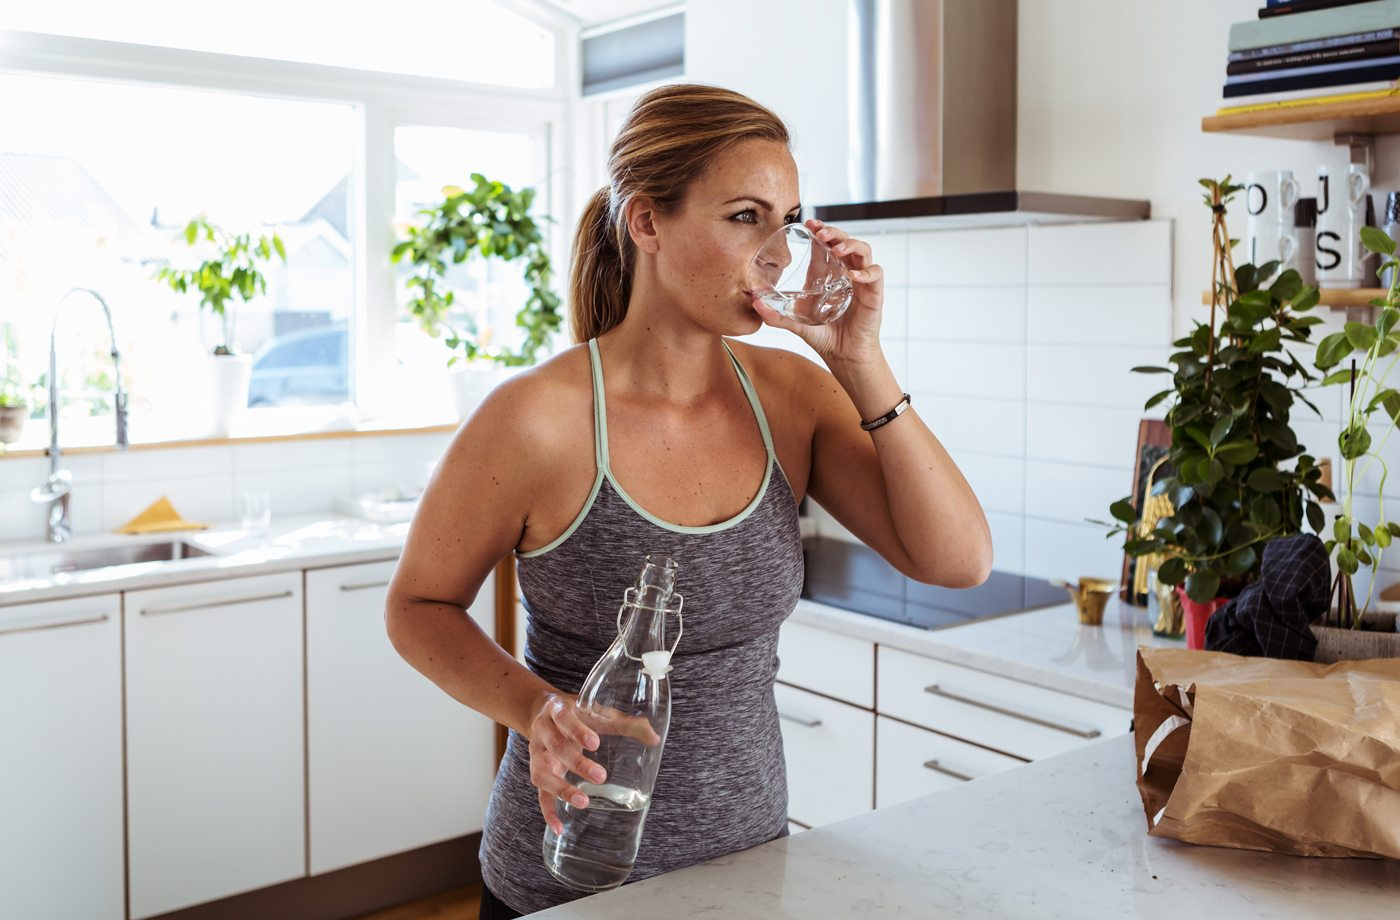 Thumbnail for Get Frequent Utis? Upping Your Daily Water Intake by *This* Much Could Cut Your Risk in Half